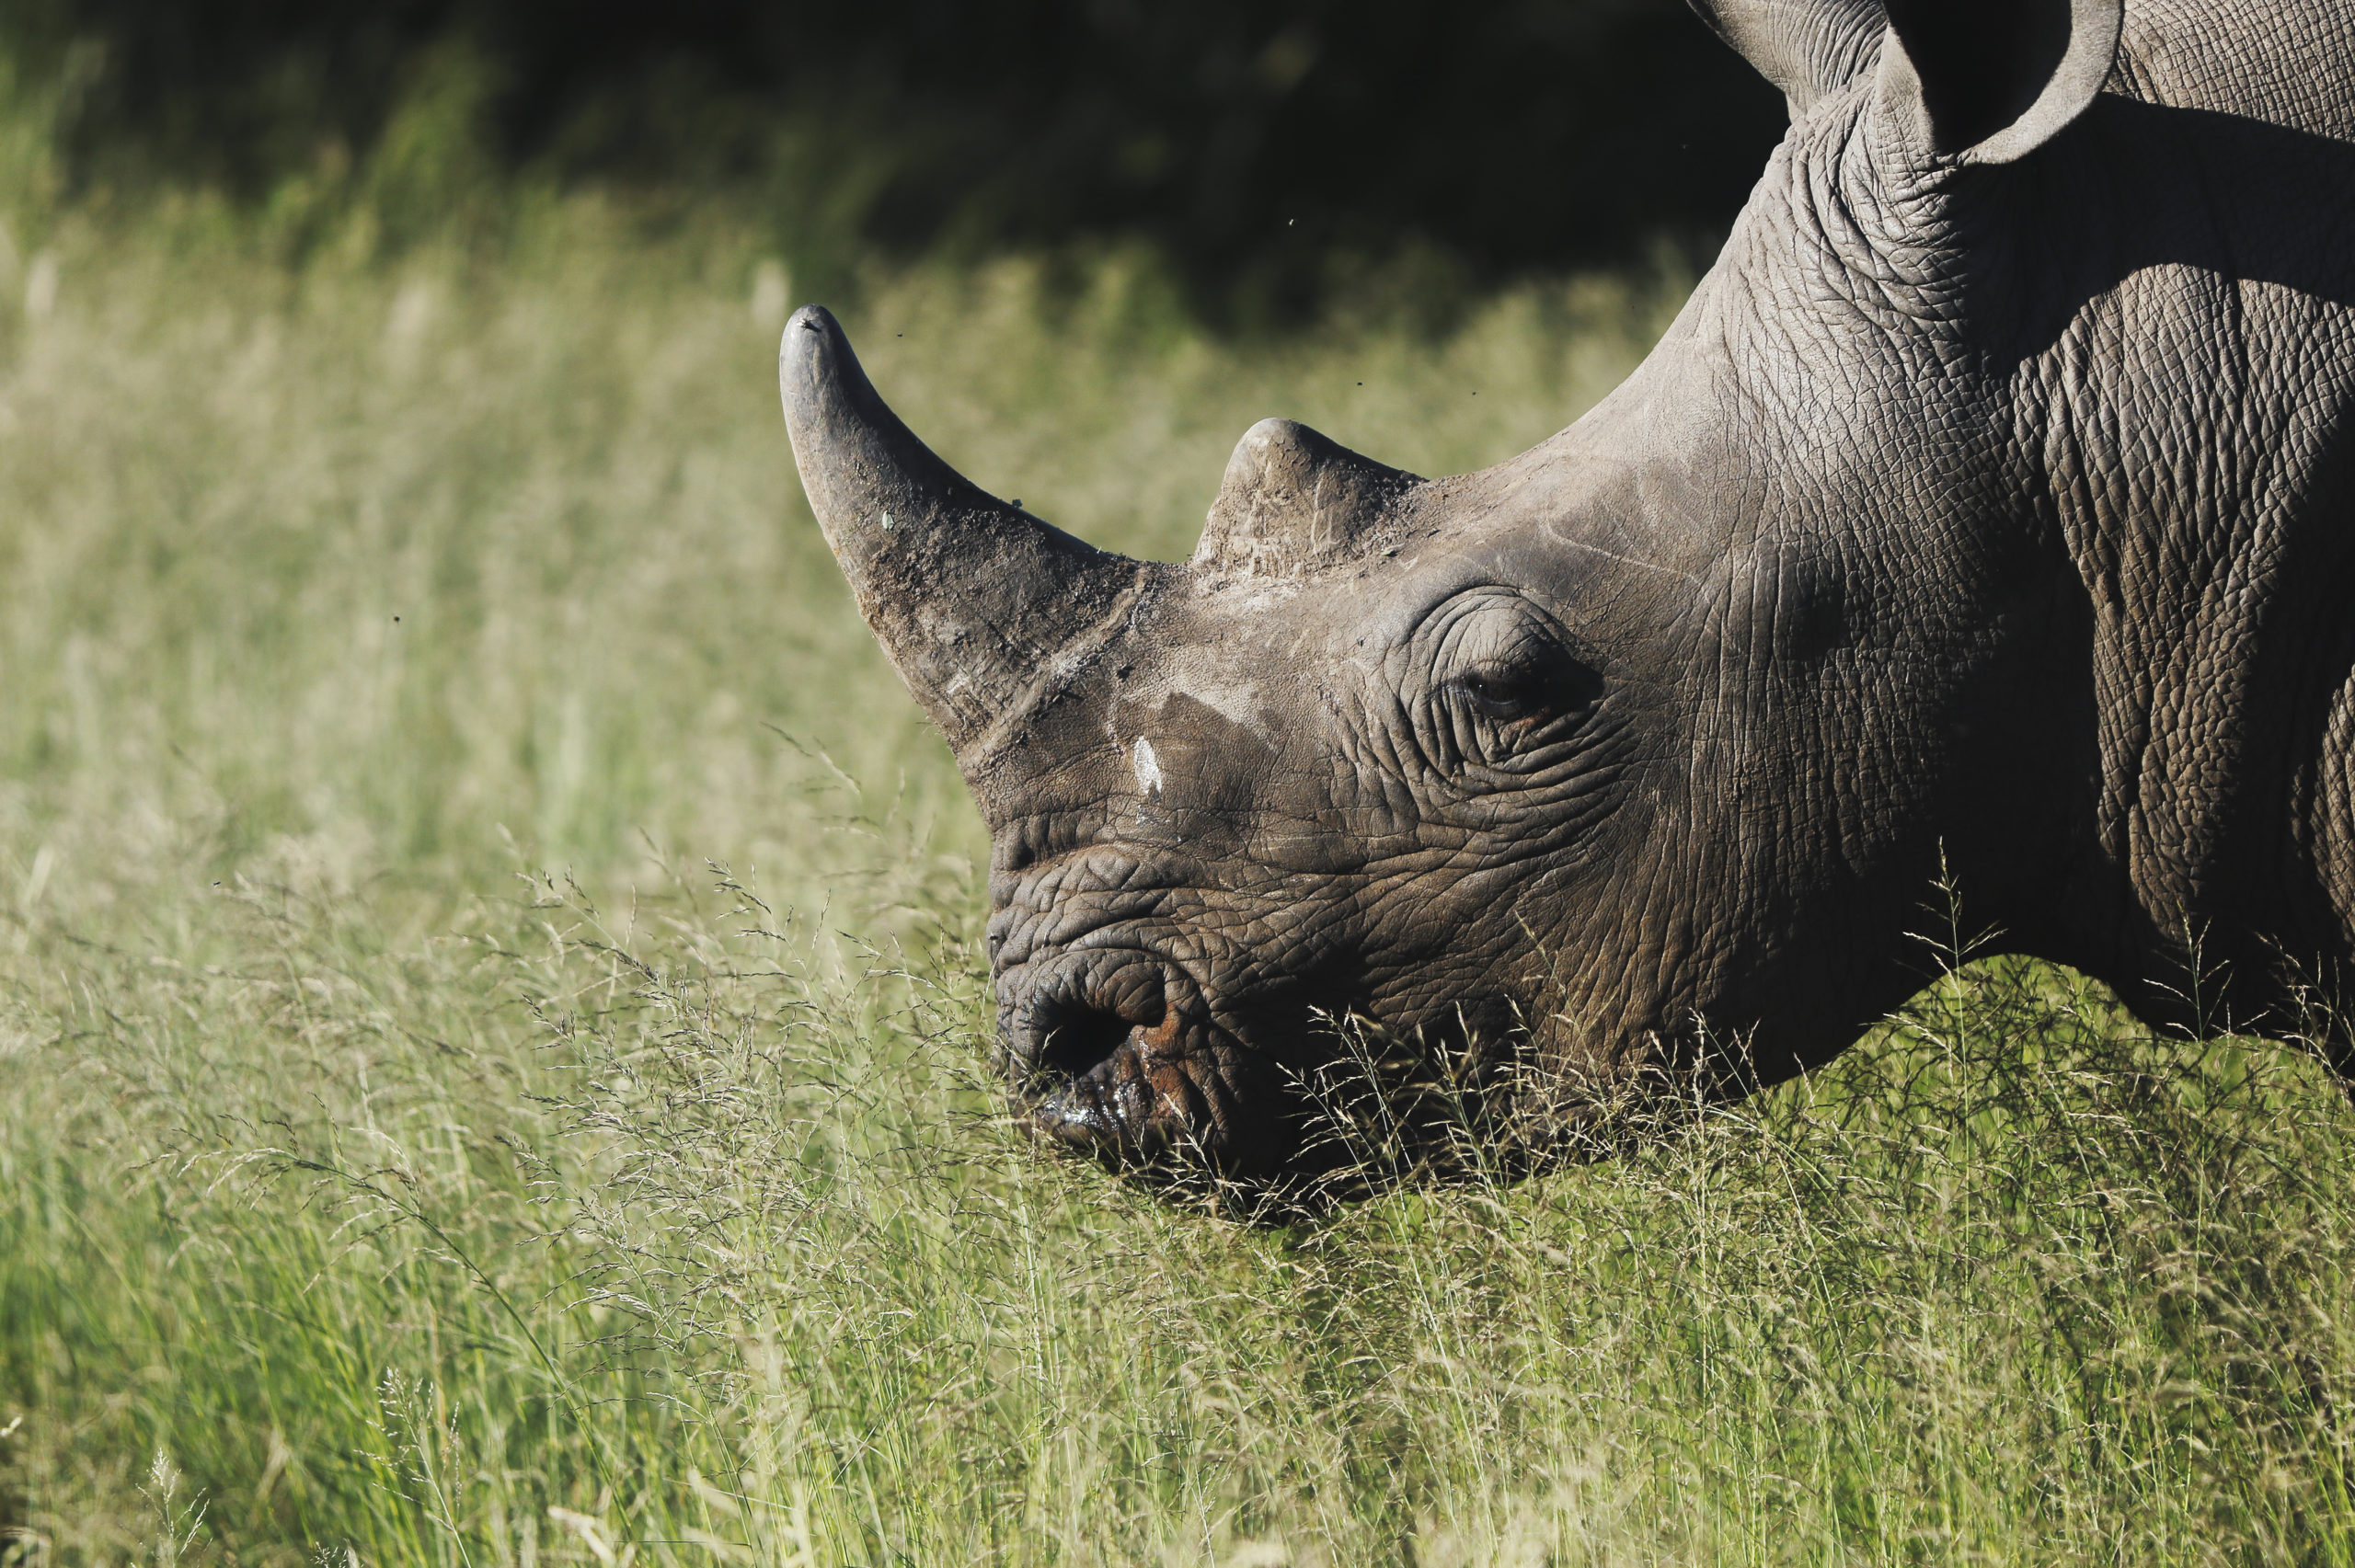 AFRICA'S TREASURES PART 3: AFRICA'S MOST ENDANGERED